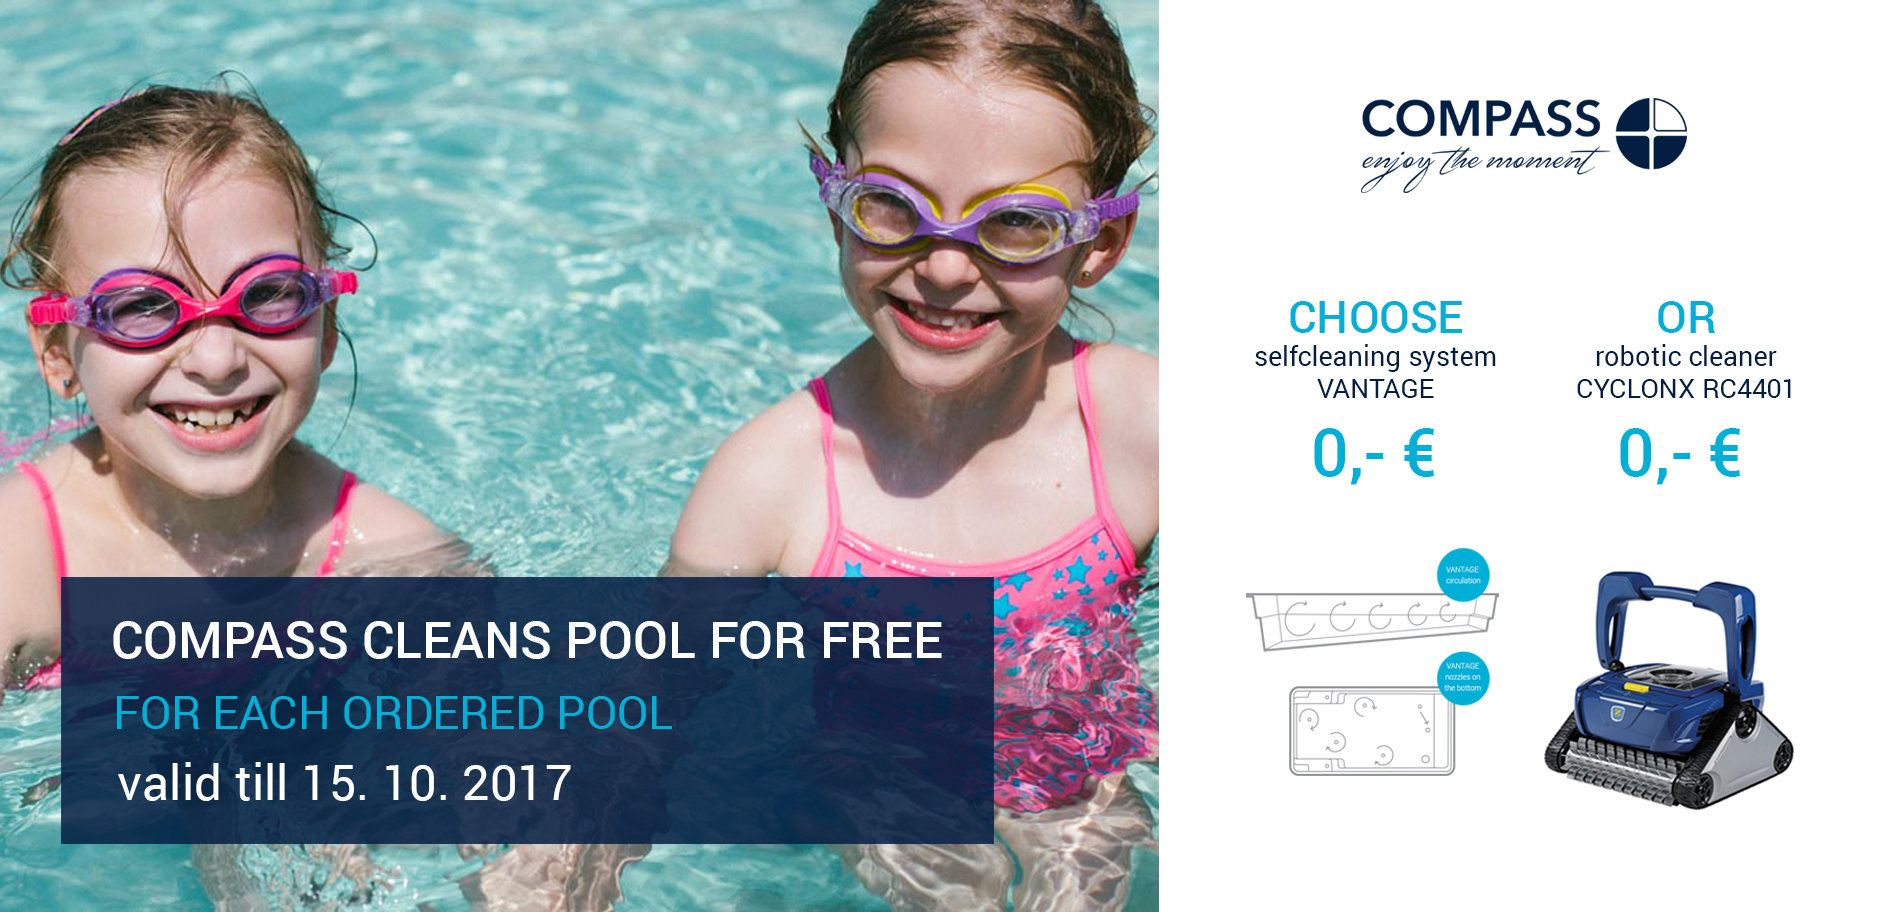 COMPASS CLEANS POOL FOR FREE